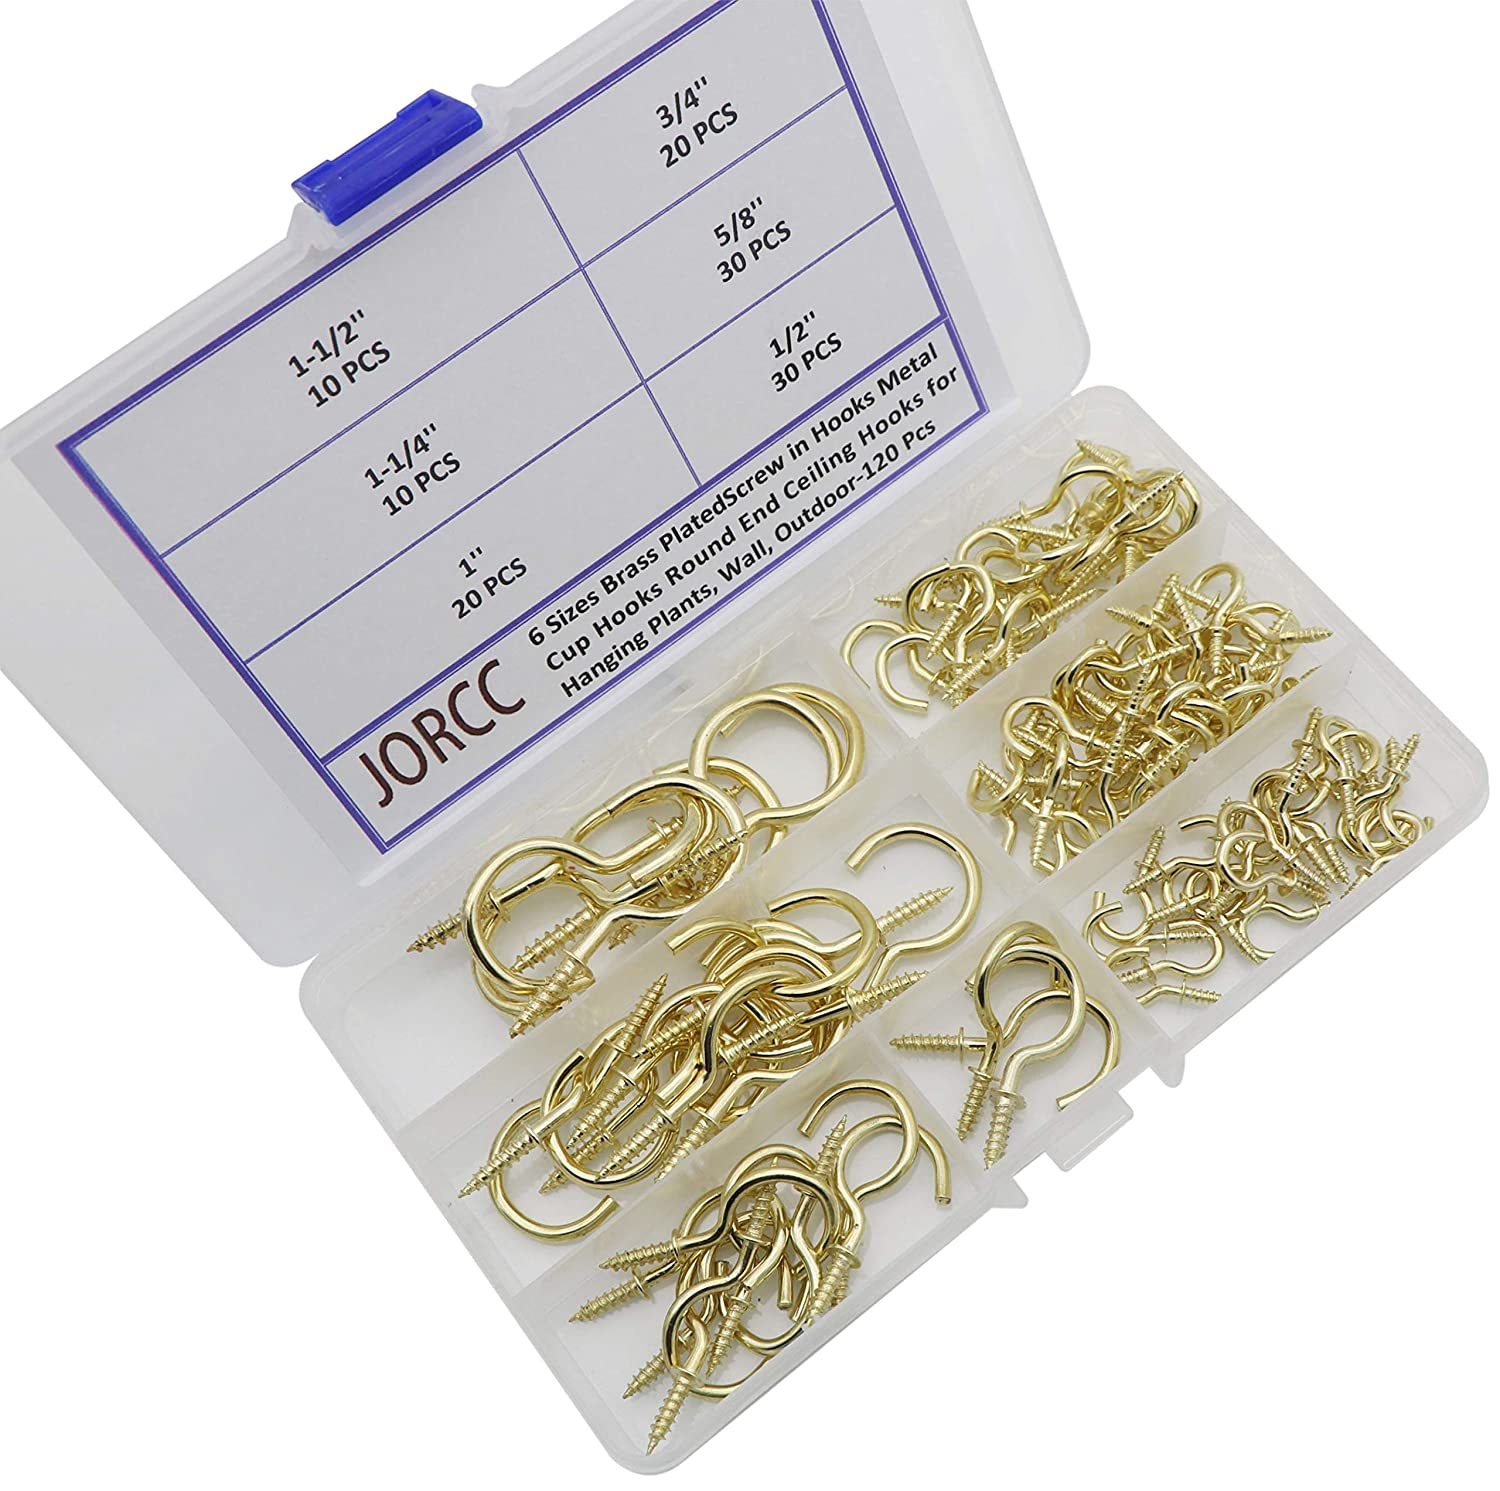 Light Mug Plant Cup Screw Hooks for Hanging 120 Pack Metal Ceiling Hooks Heavy Duty 6 Size Brass Plated Cup Hooks for Coffee Tea Cup